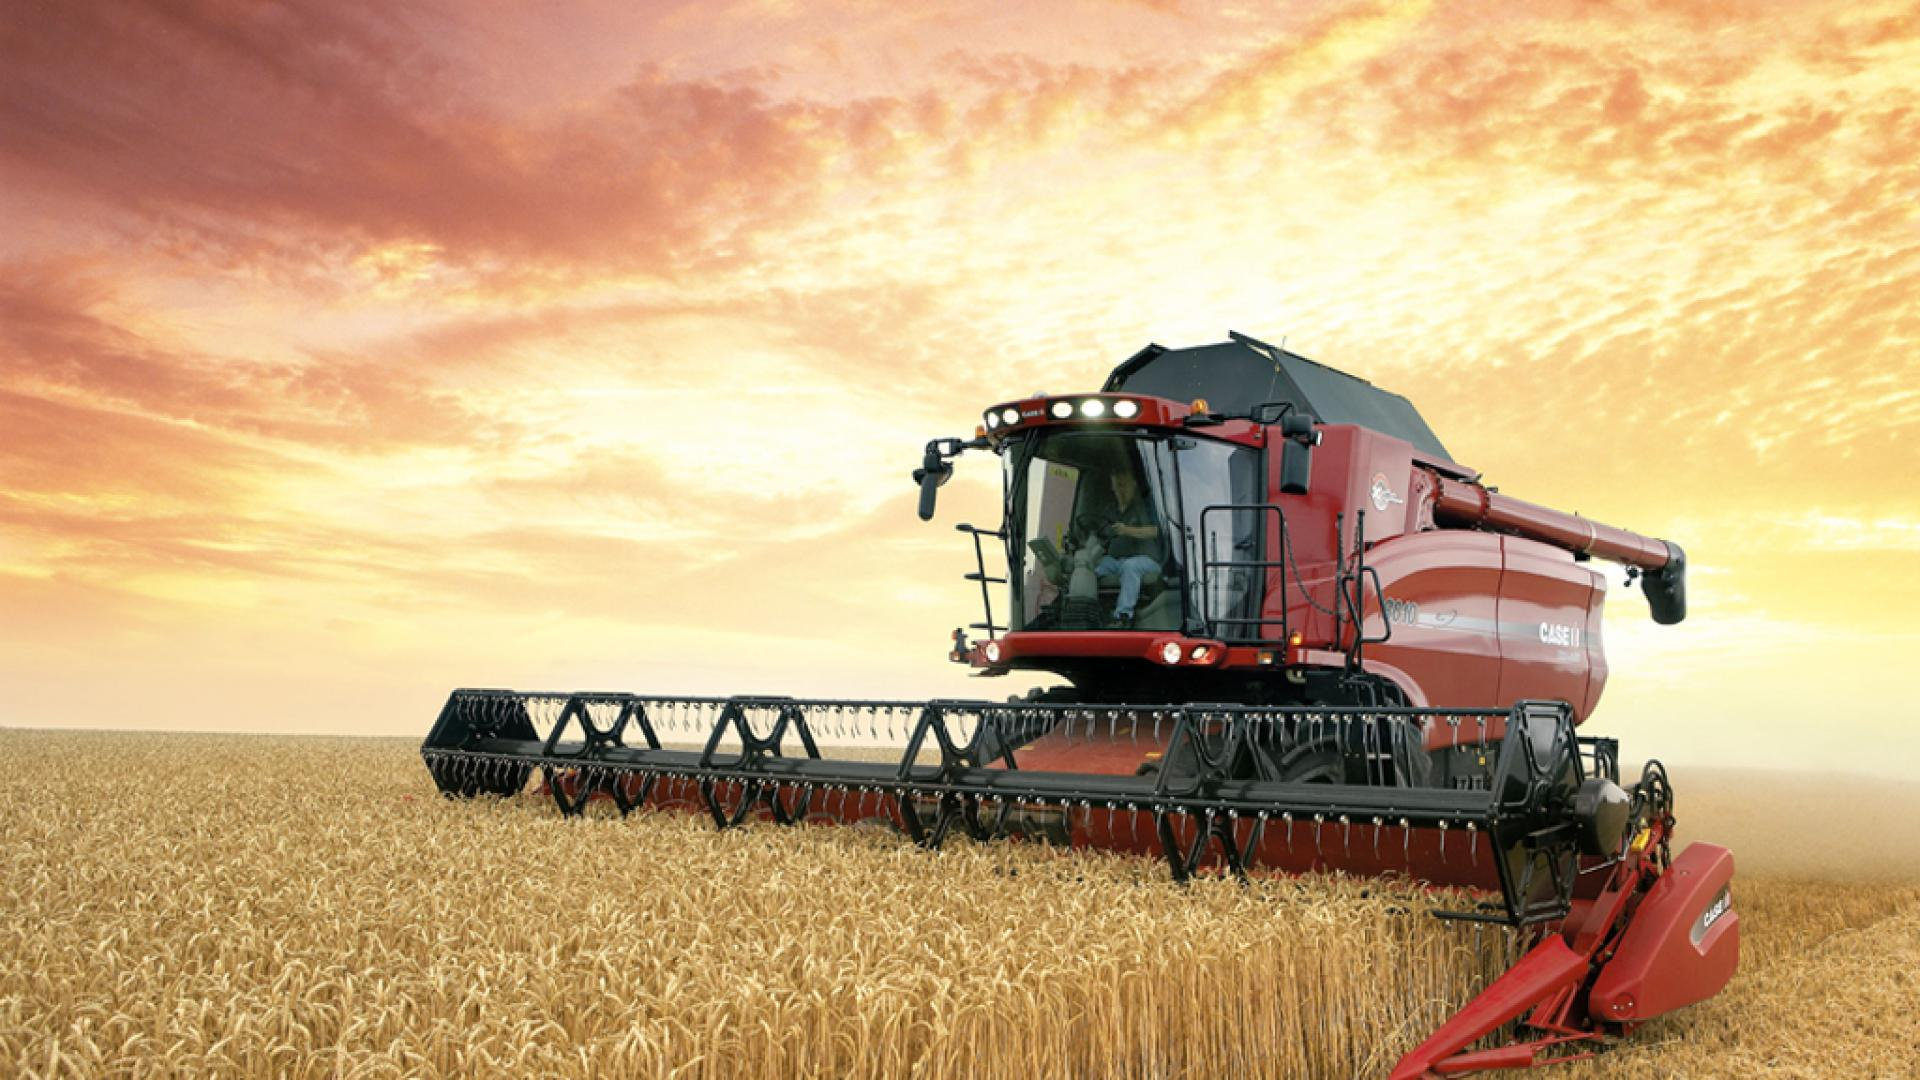 Farming Backgrounds Download 1920x1080